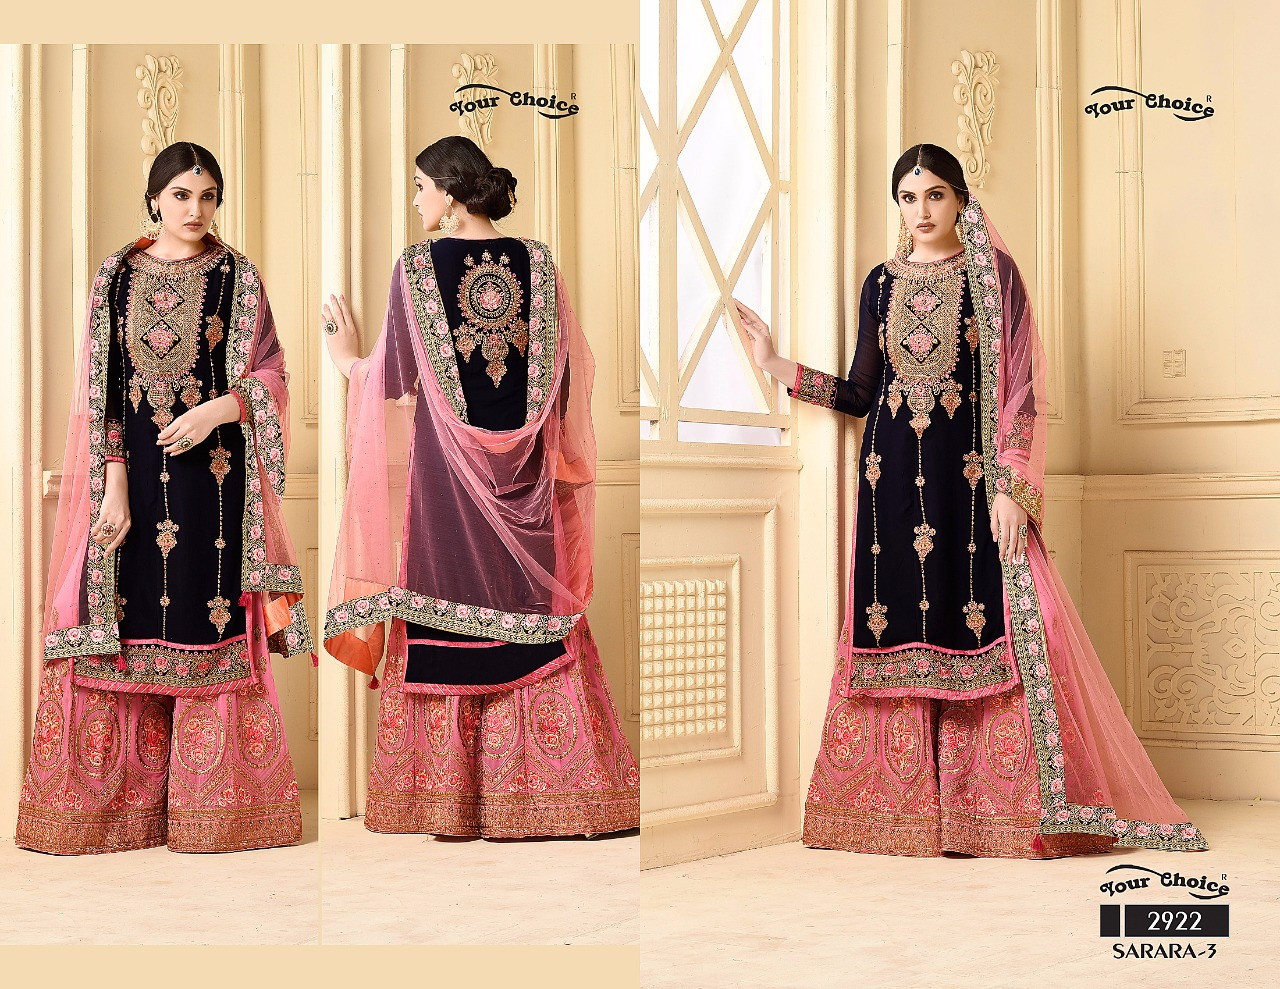 a7ba03ed76 SARARA VOL-3 BY YOUR CHOICE 2922 TO 2925 SERIES BEAUTIFUL DESIGNER SUITS  COLORFUL STYLISH FANCY PARTY WEAR & ETHNIC WEAR FAUX GEORGETTE DRESSES AT  WHOLESALE ...